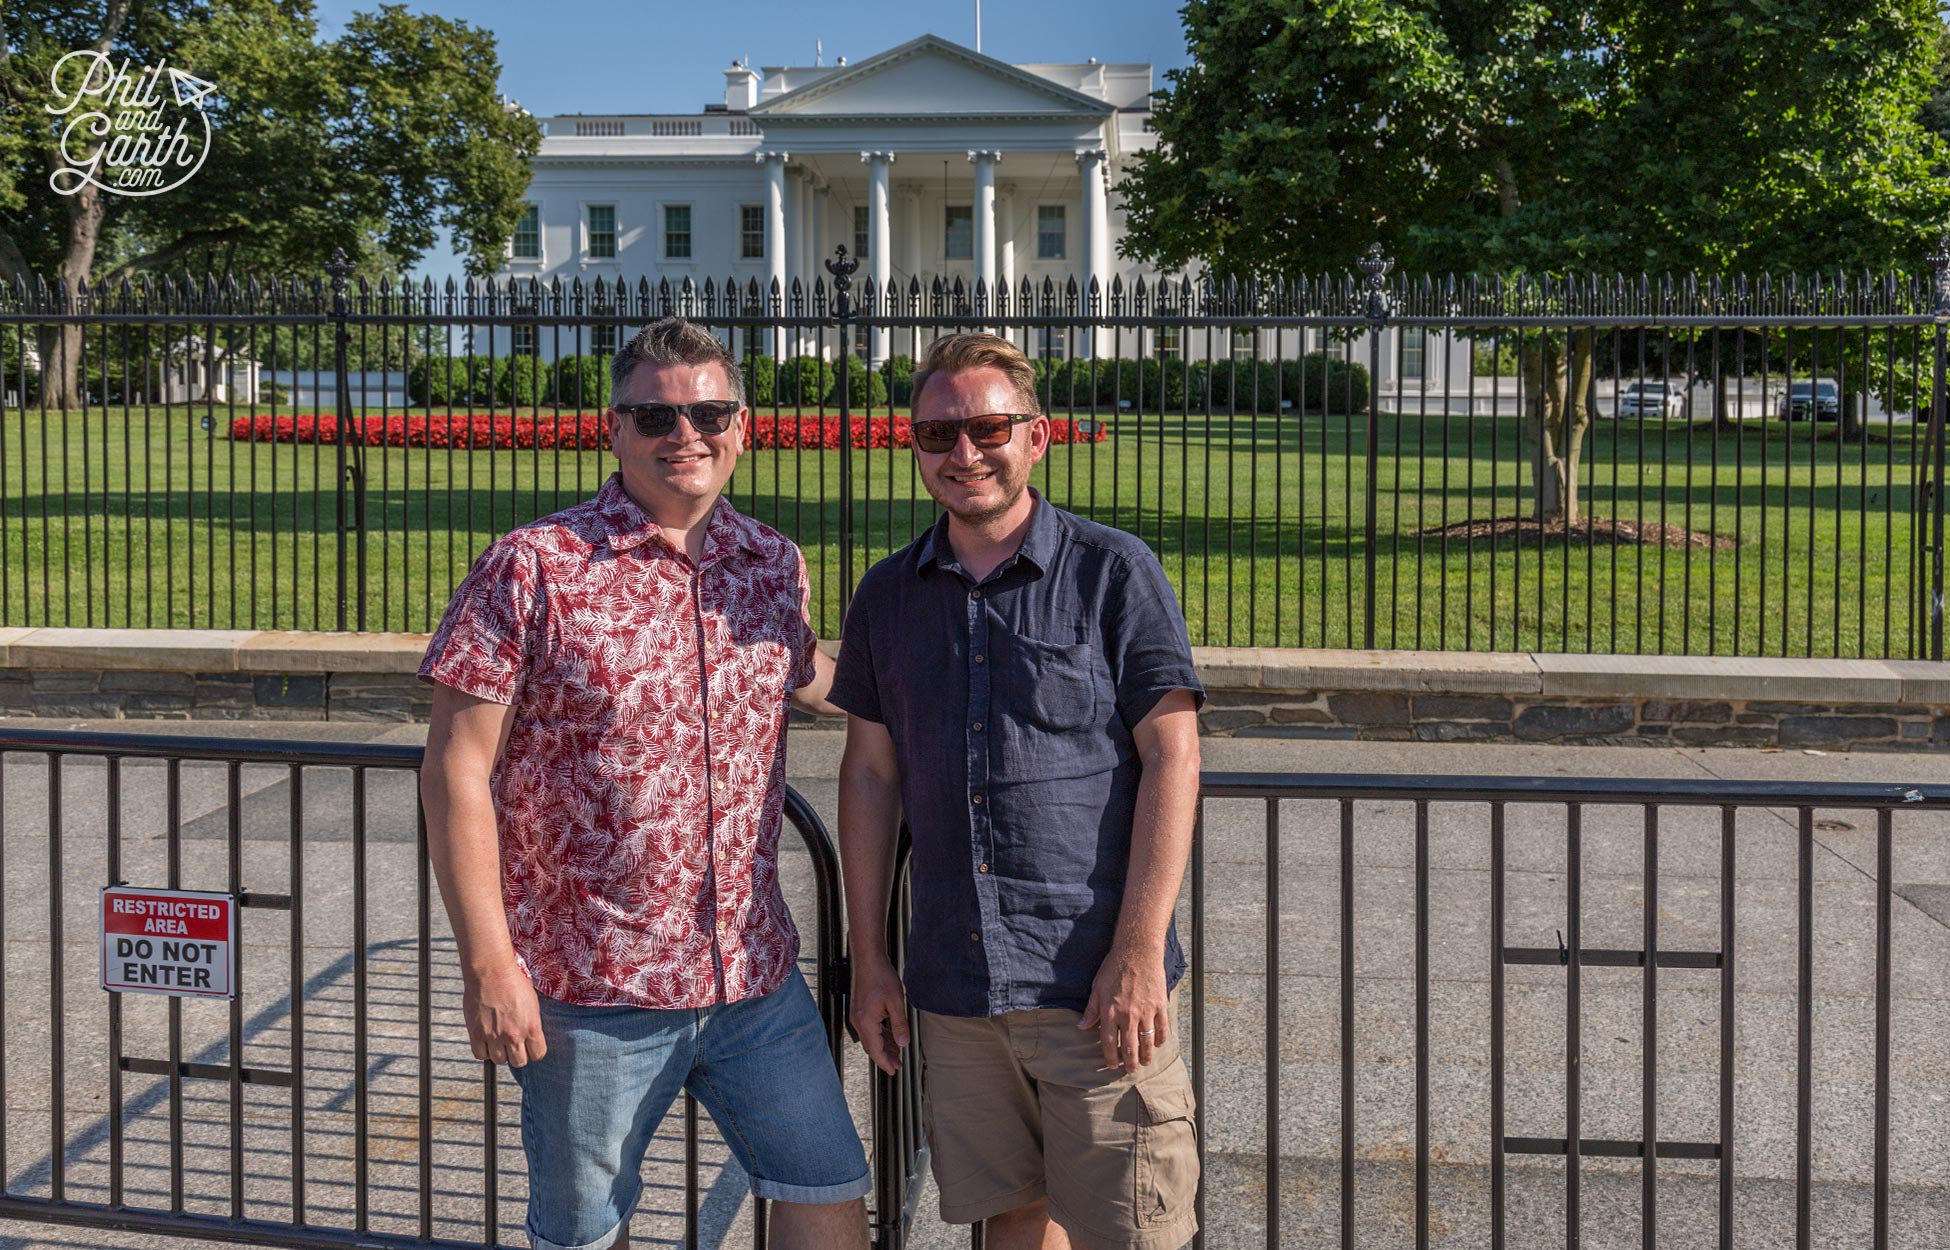 Phil and Garth outside The White House